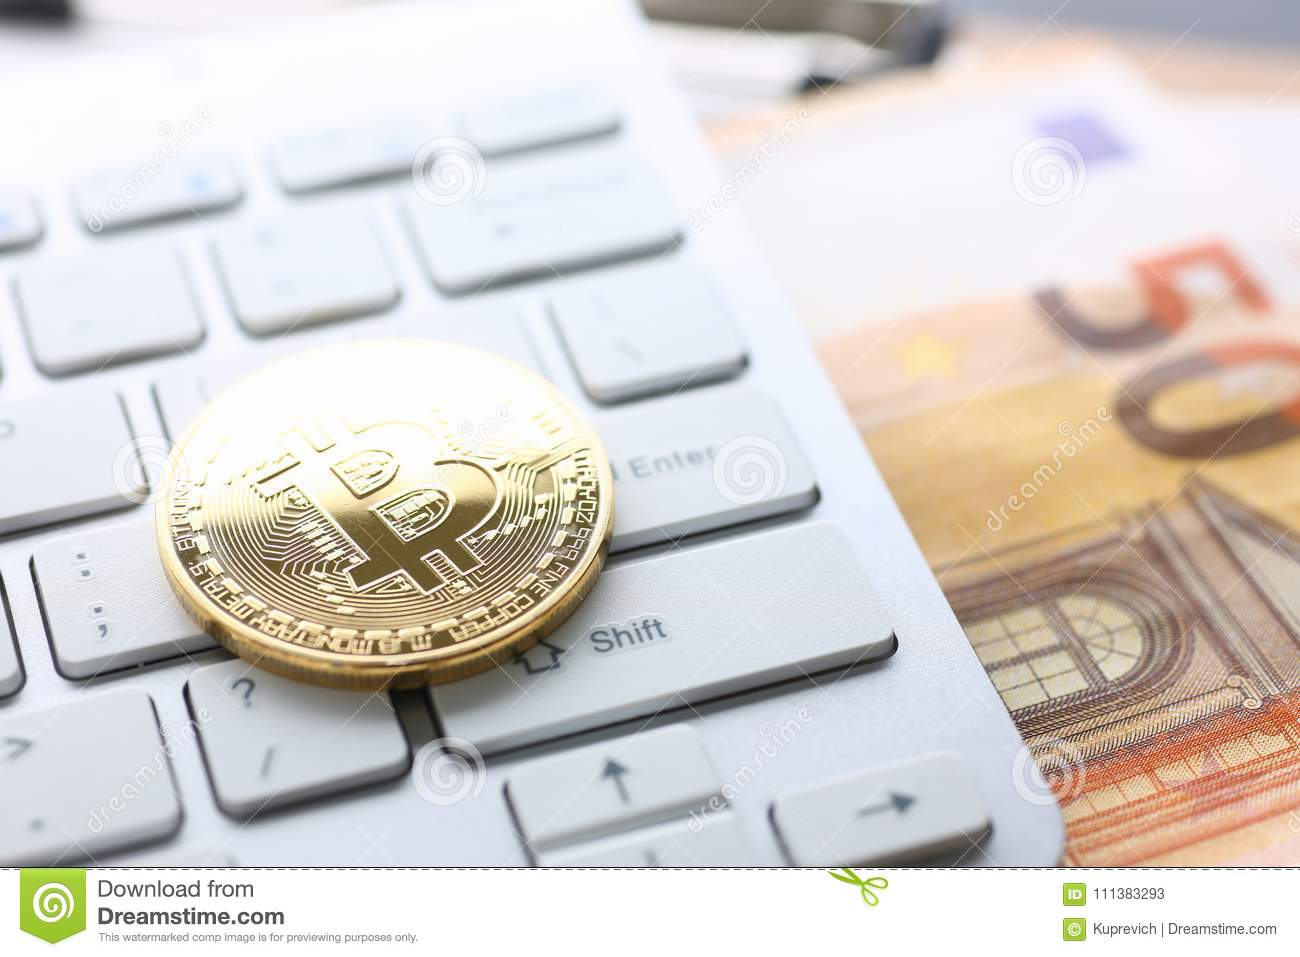 Coin Crypto Currency Bitcoin Lies On The Keyboard Stock Image